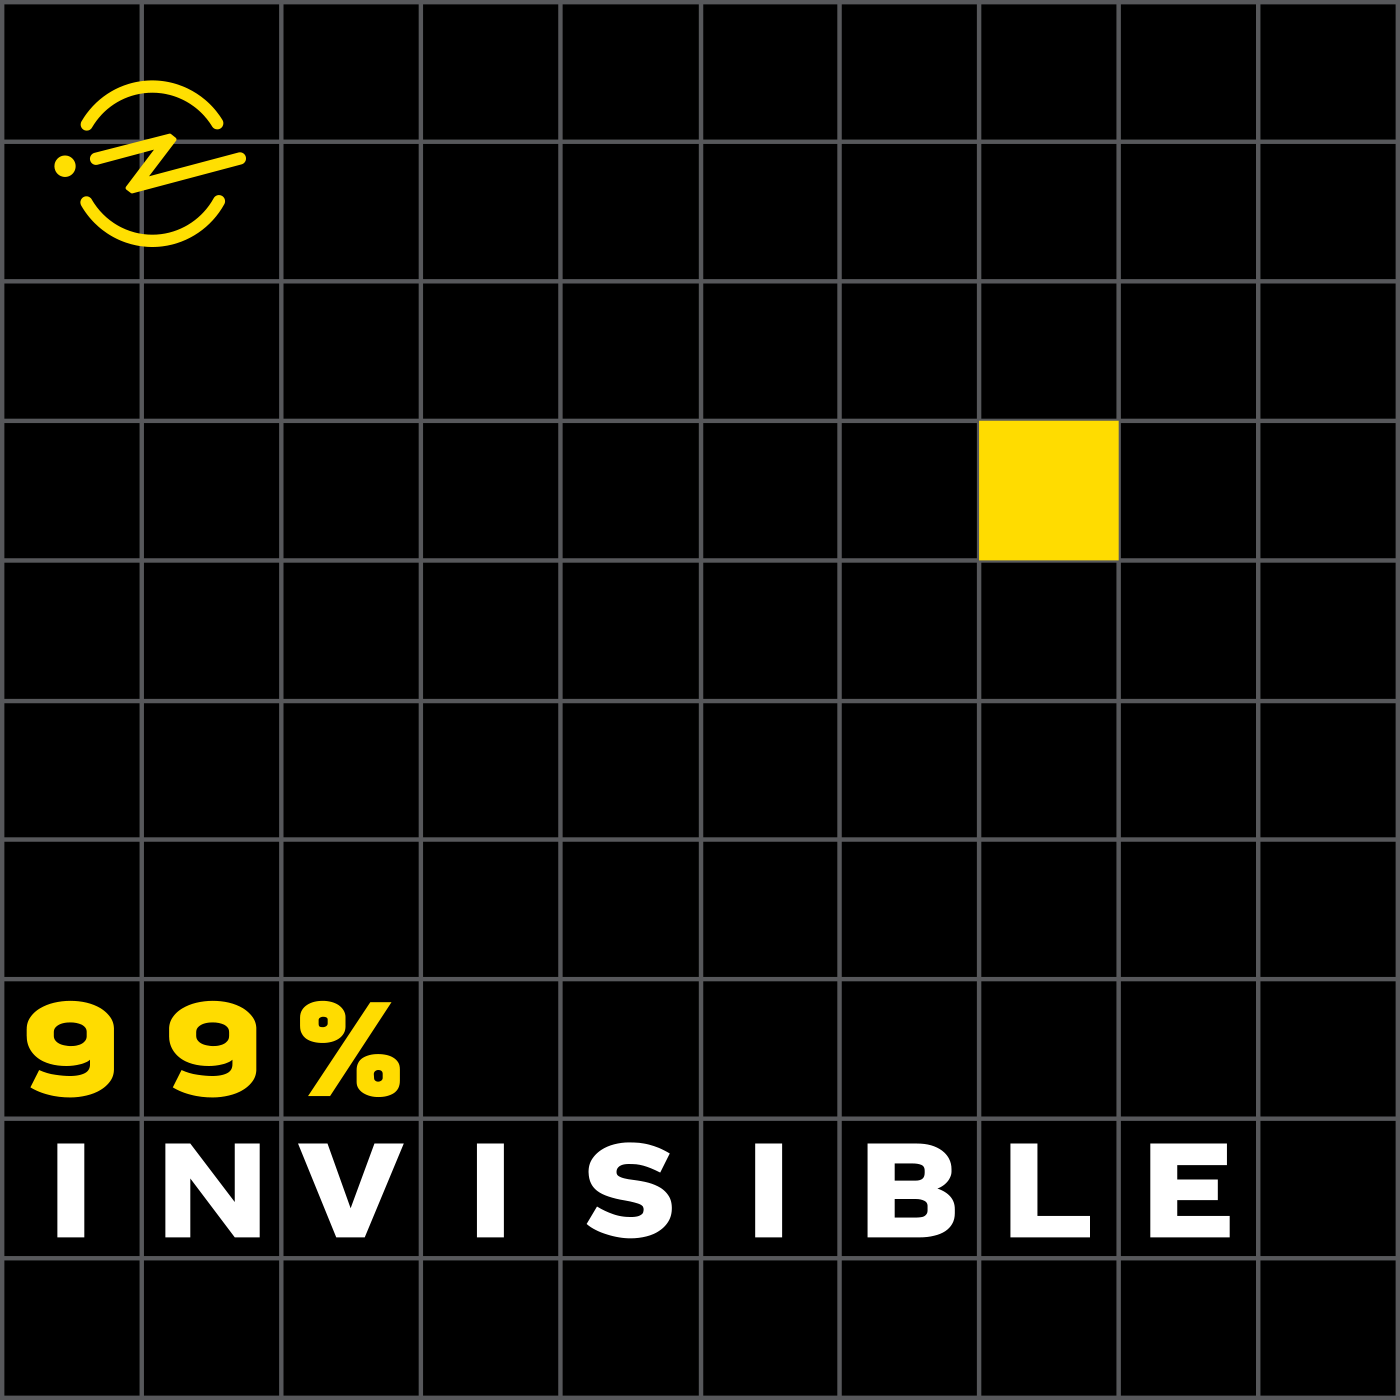 99% Invisible   Best for : Design geeks  What to expect:  One of the most popular podcasts on iTunes,  99% Invisible  explores the peripheral design processes and architectures that shape our world.  Find it on:   iTunes ,  Stitcher ,  Soundcloud ,  Spotify   More like this:   The Urbanist